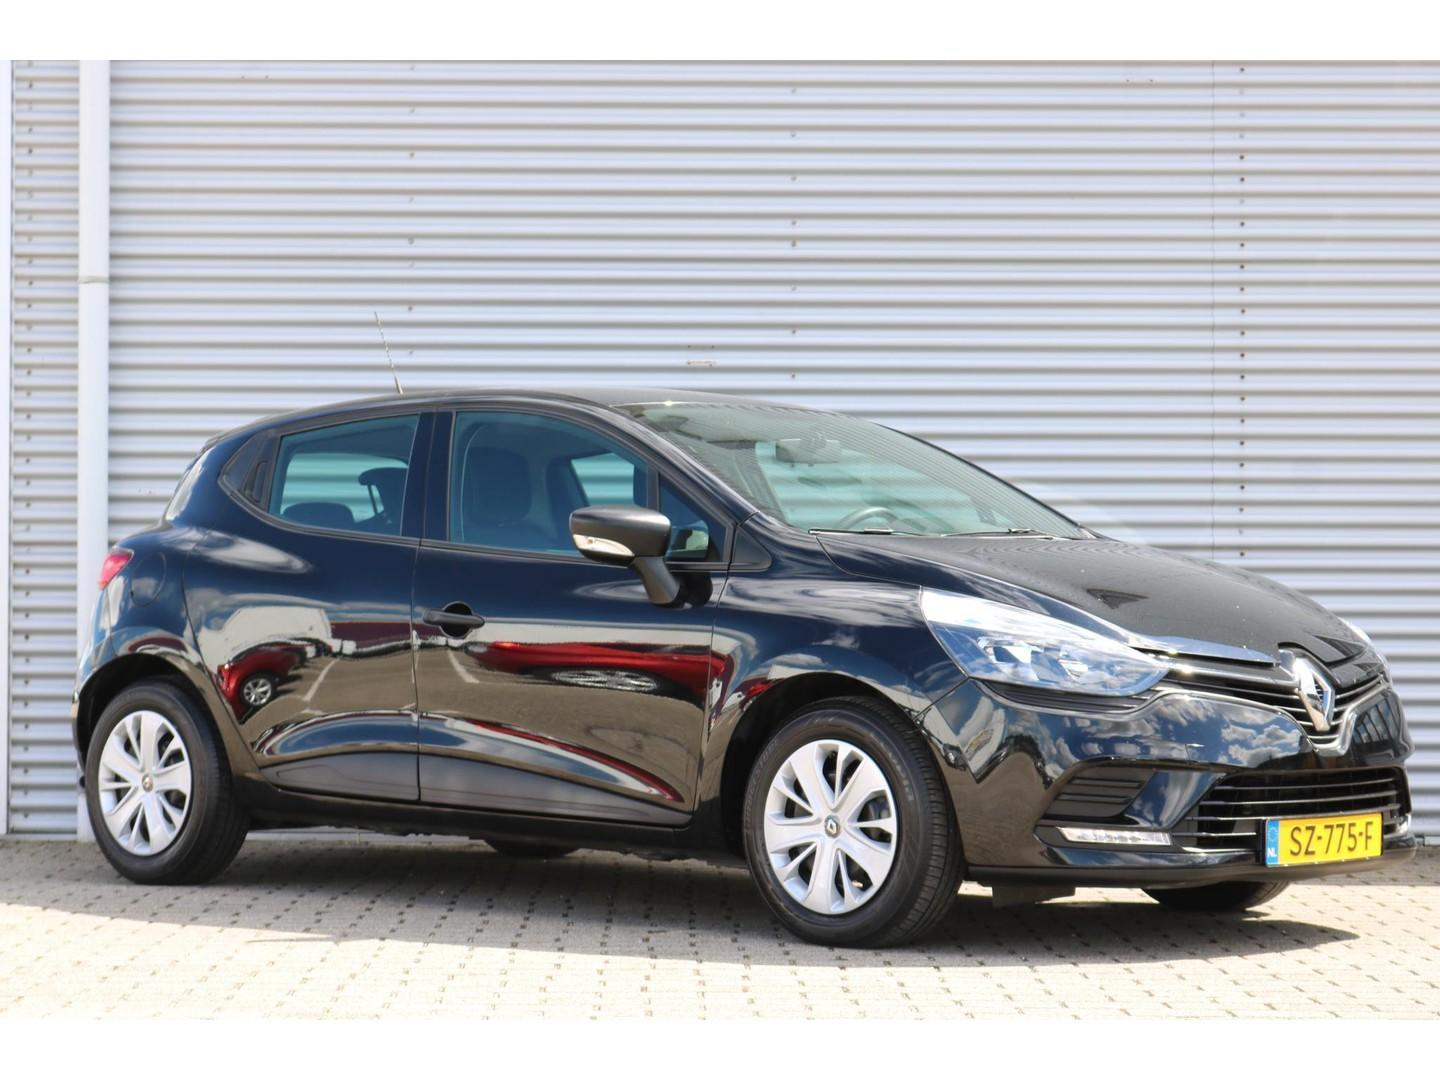 Renault Clio Tce 90 pk life